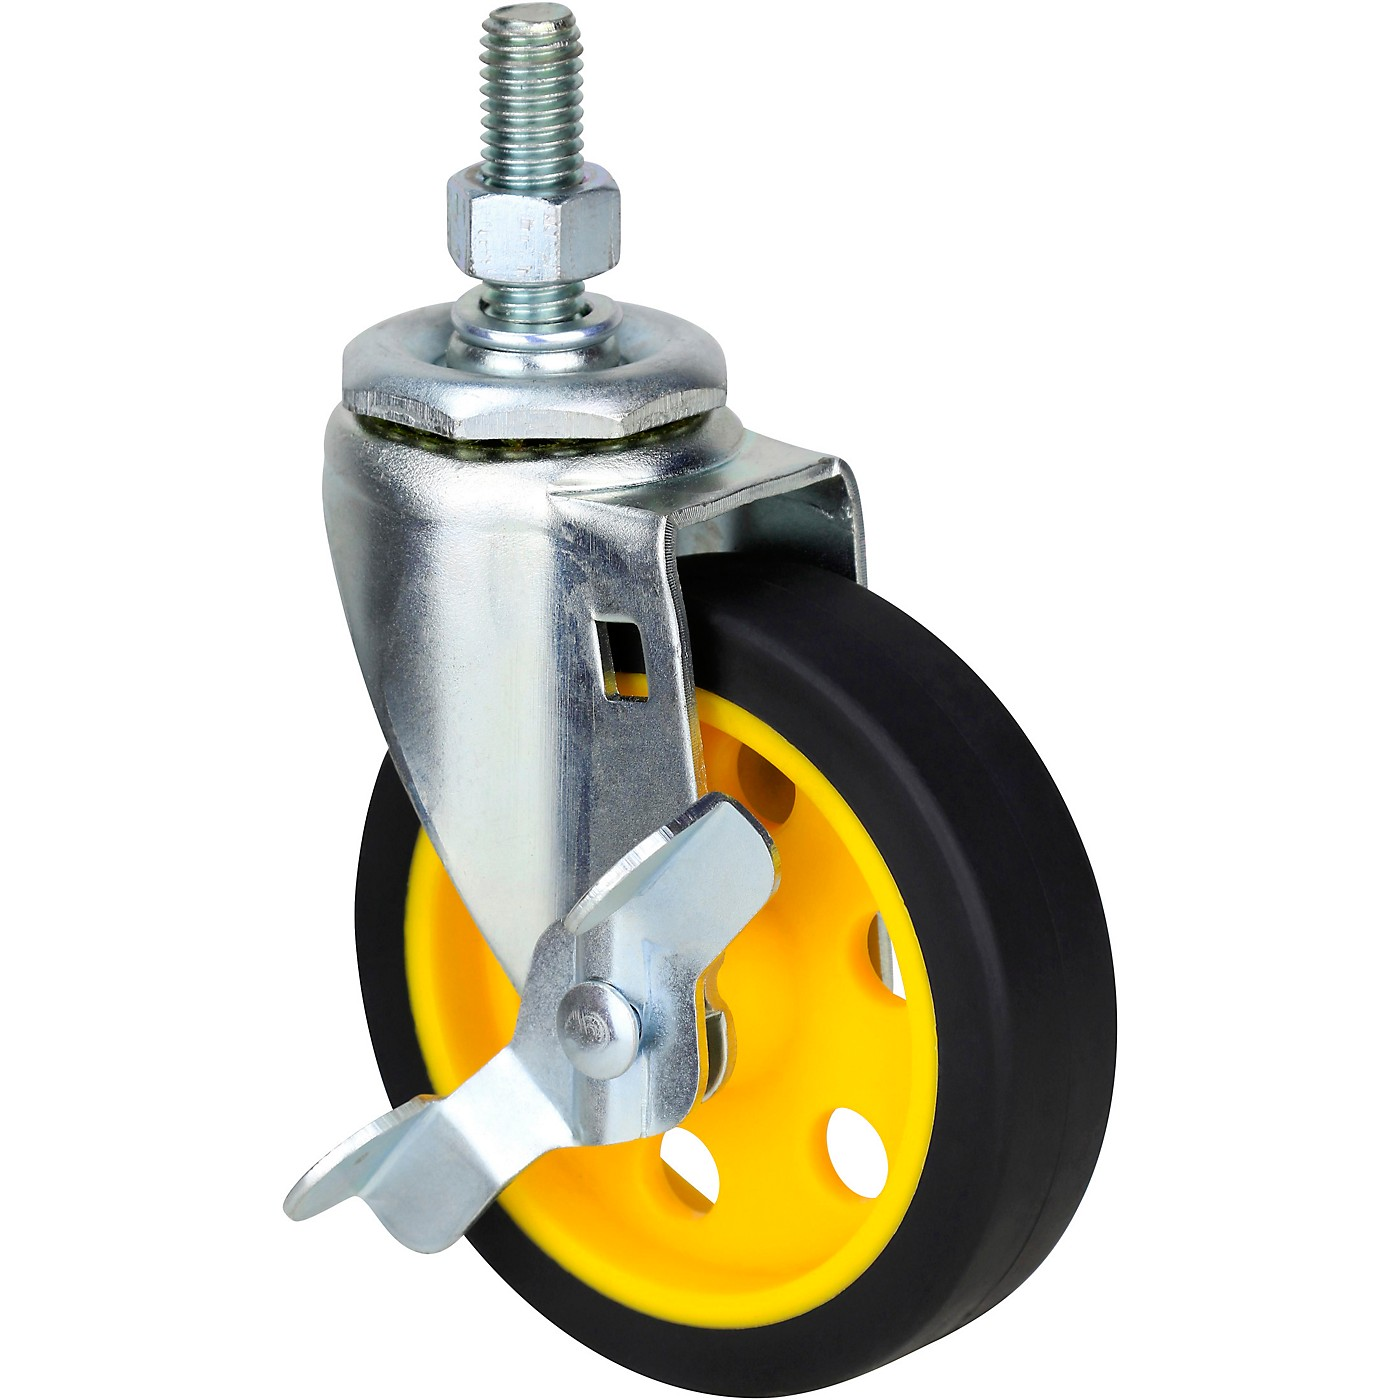 Rock N Roller RCSTR4X1 4-in. G-Force Caster With Brake for R2, R6 Carts - 2-Pack thumbnail